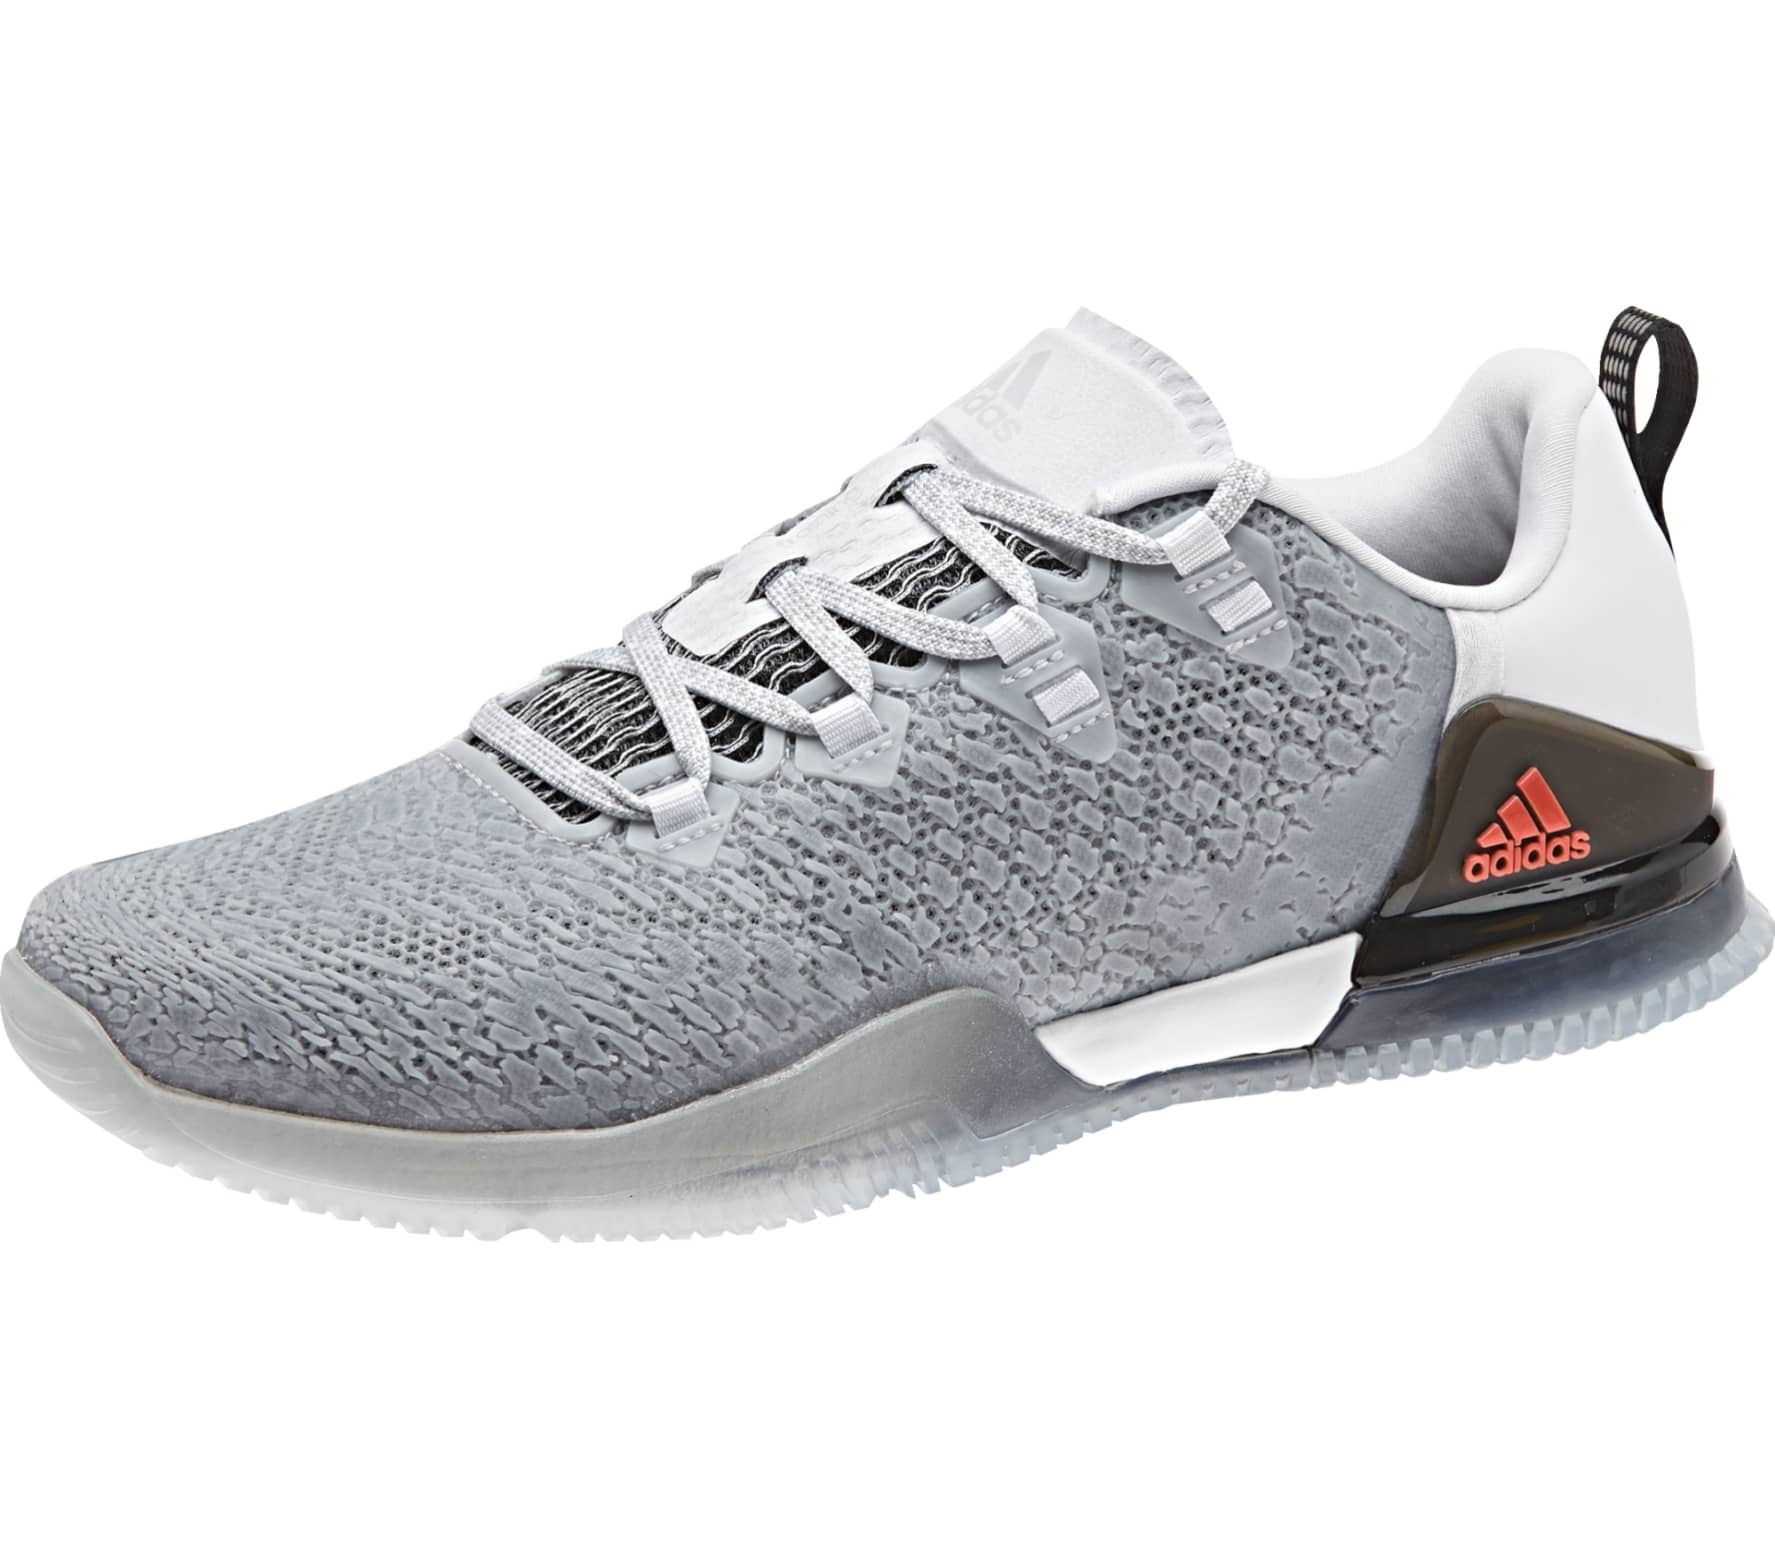 best service 95881 20438 Adidas - CrazyPower TR Damen Trainingsschuh (hellgrauweiß)